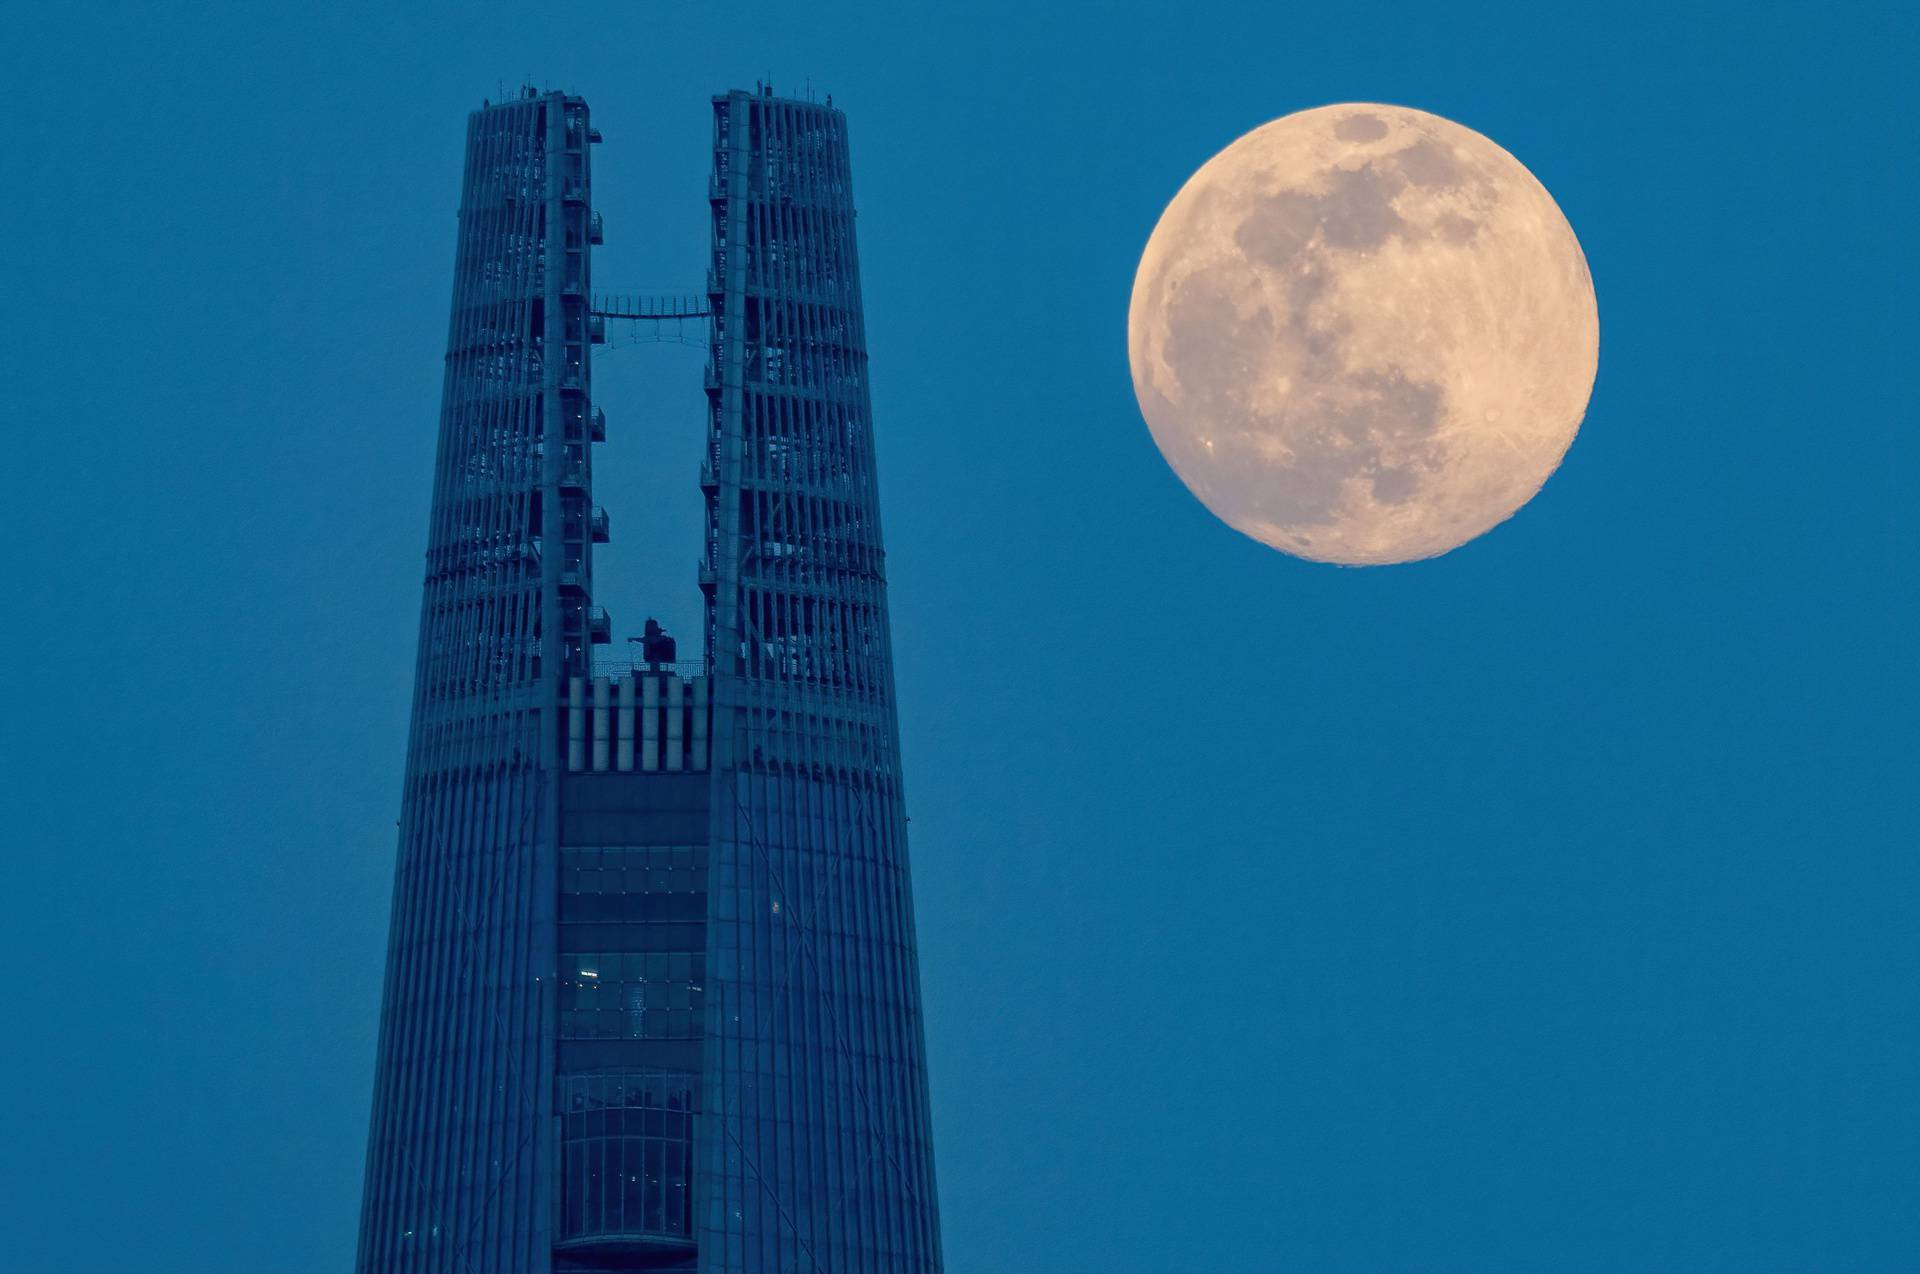 Lotte World Tower with moon, Seoul, South Korea - 26 Apr 2021